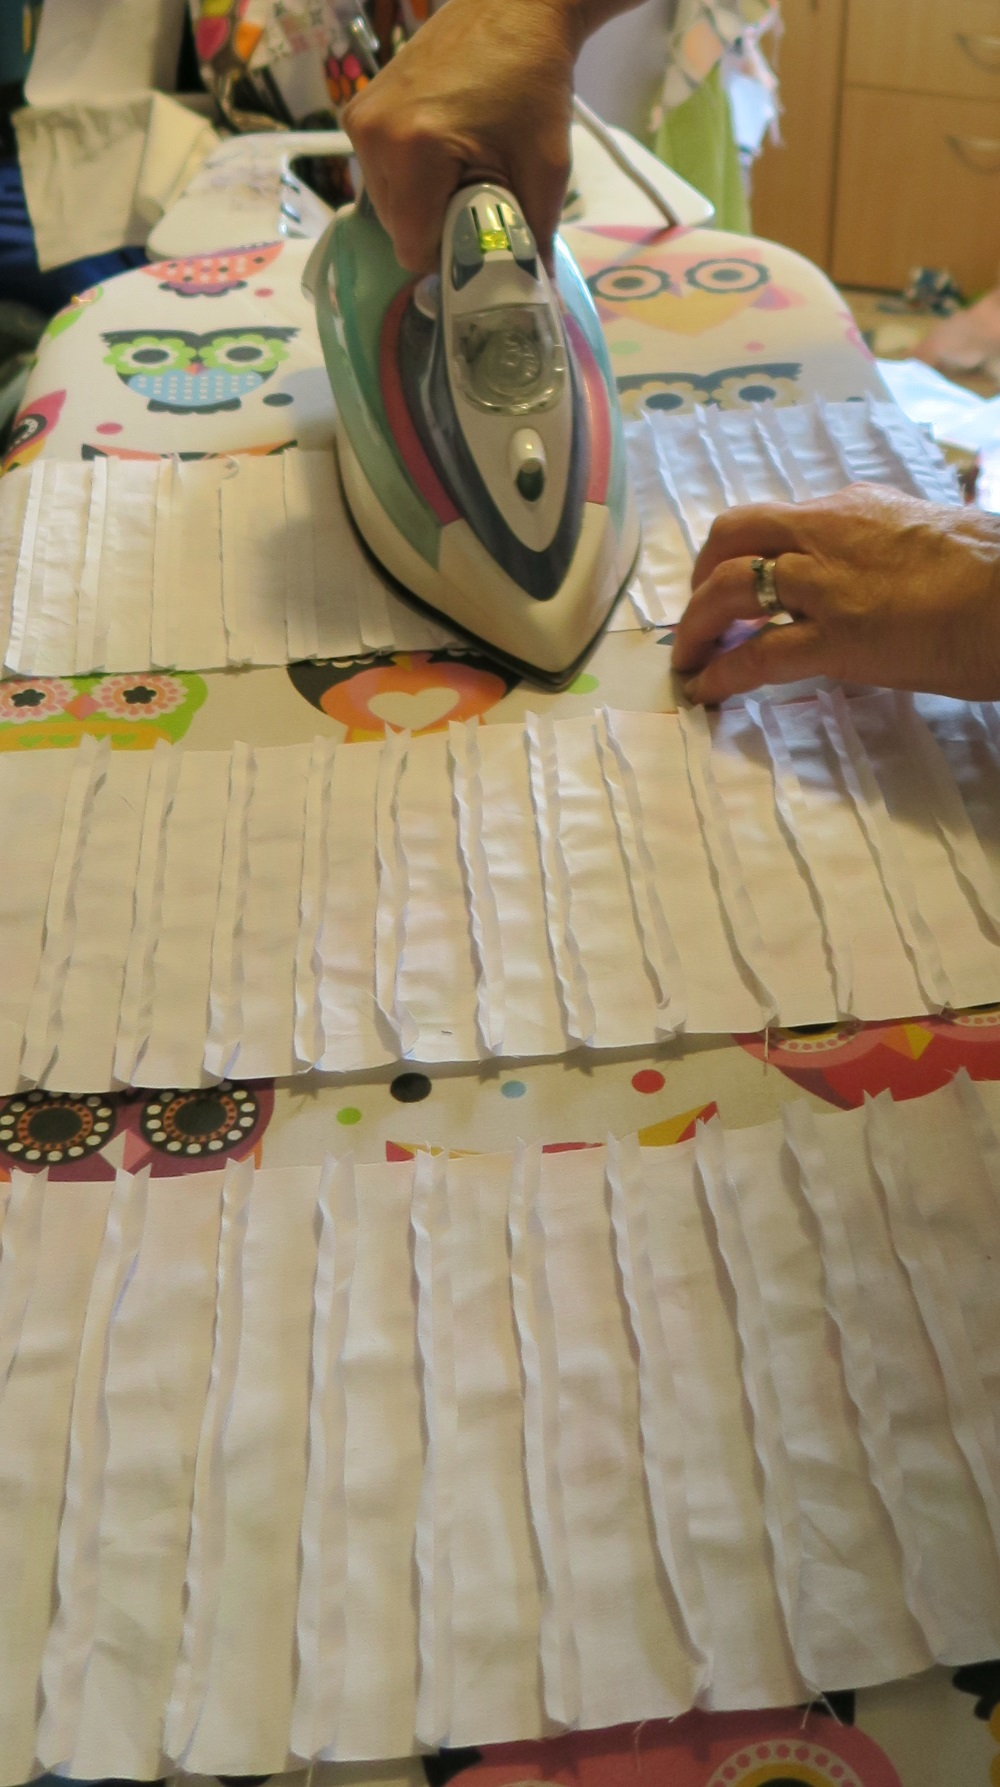 Rachael pressing open border for the piano keys quilt, with a green iron on top of a colorful owl ironing board